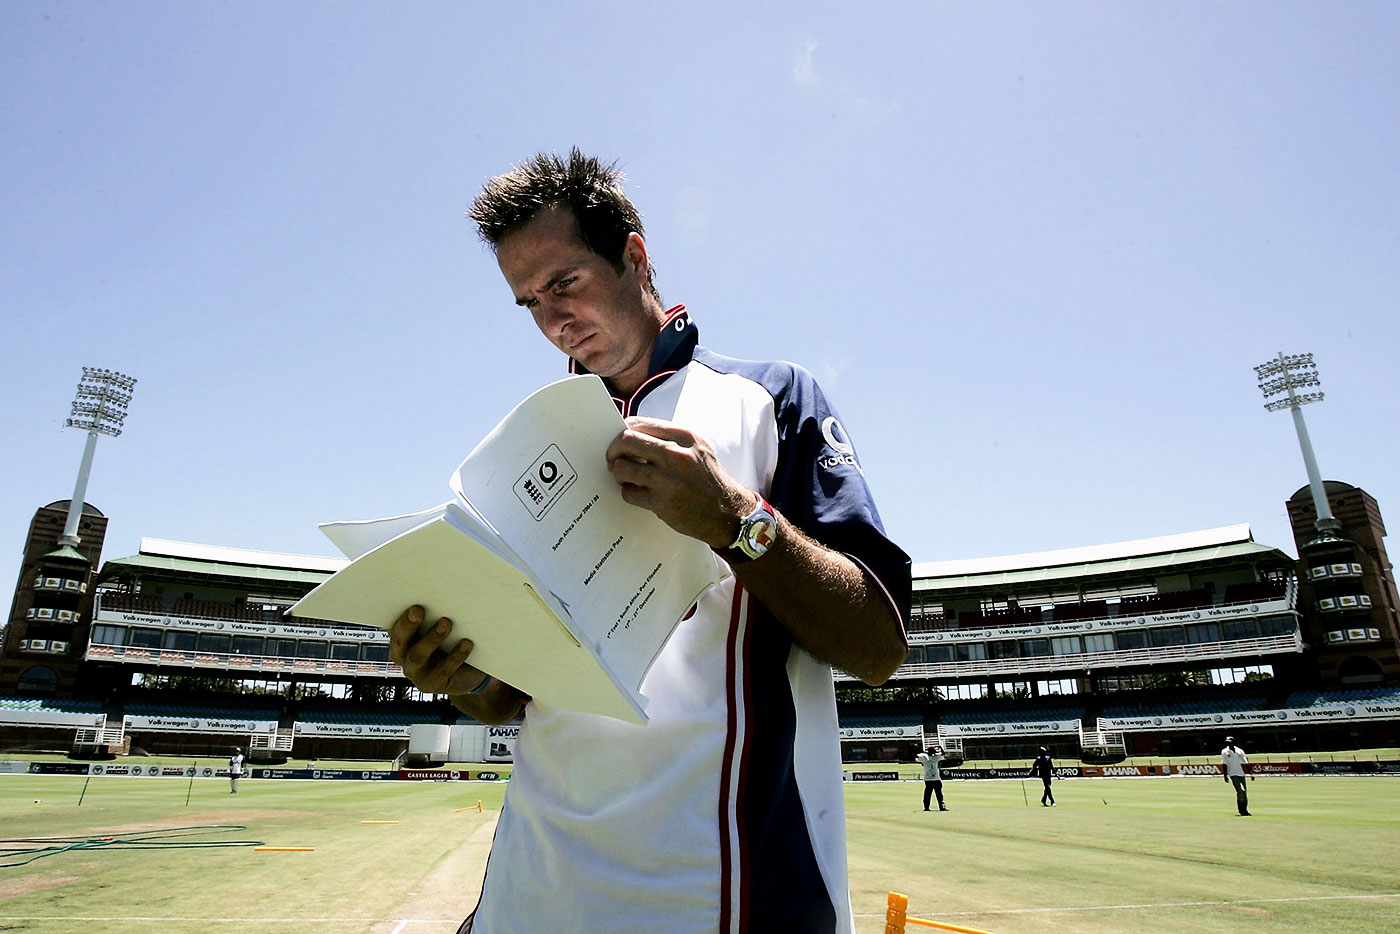 Have players come to regard cricket stats with less distrust, now that data analysis is commonplace?